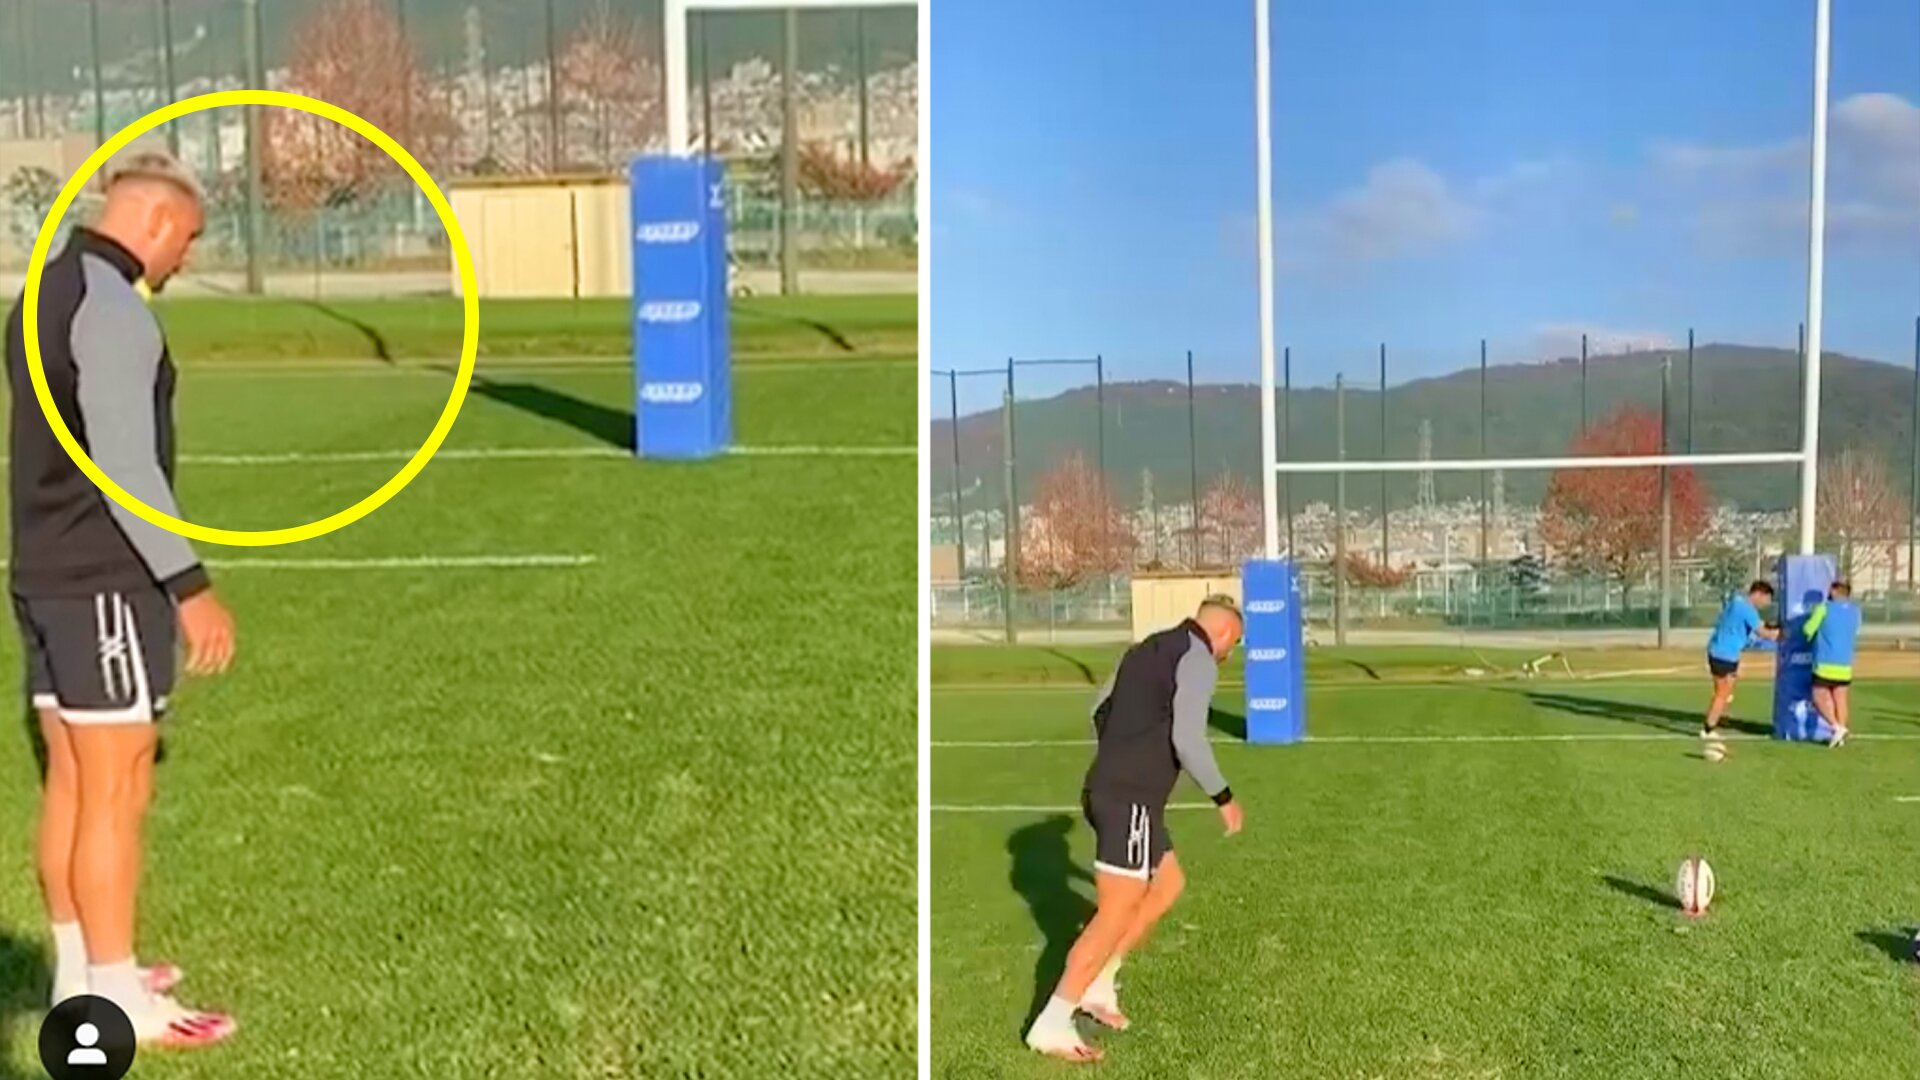 The new Quade Cooper kicking technique which could take rugby by storm